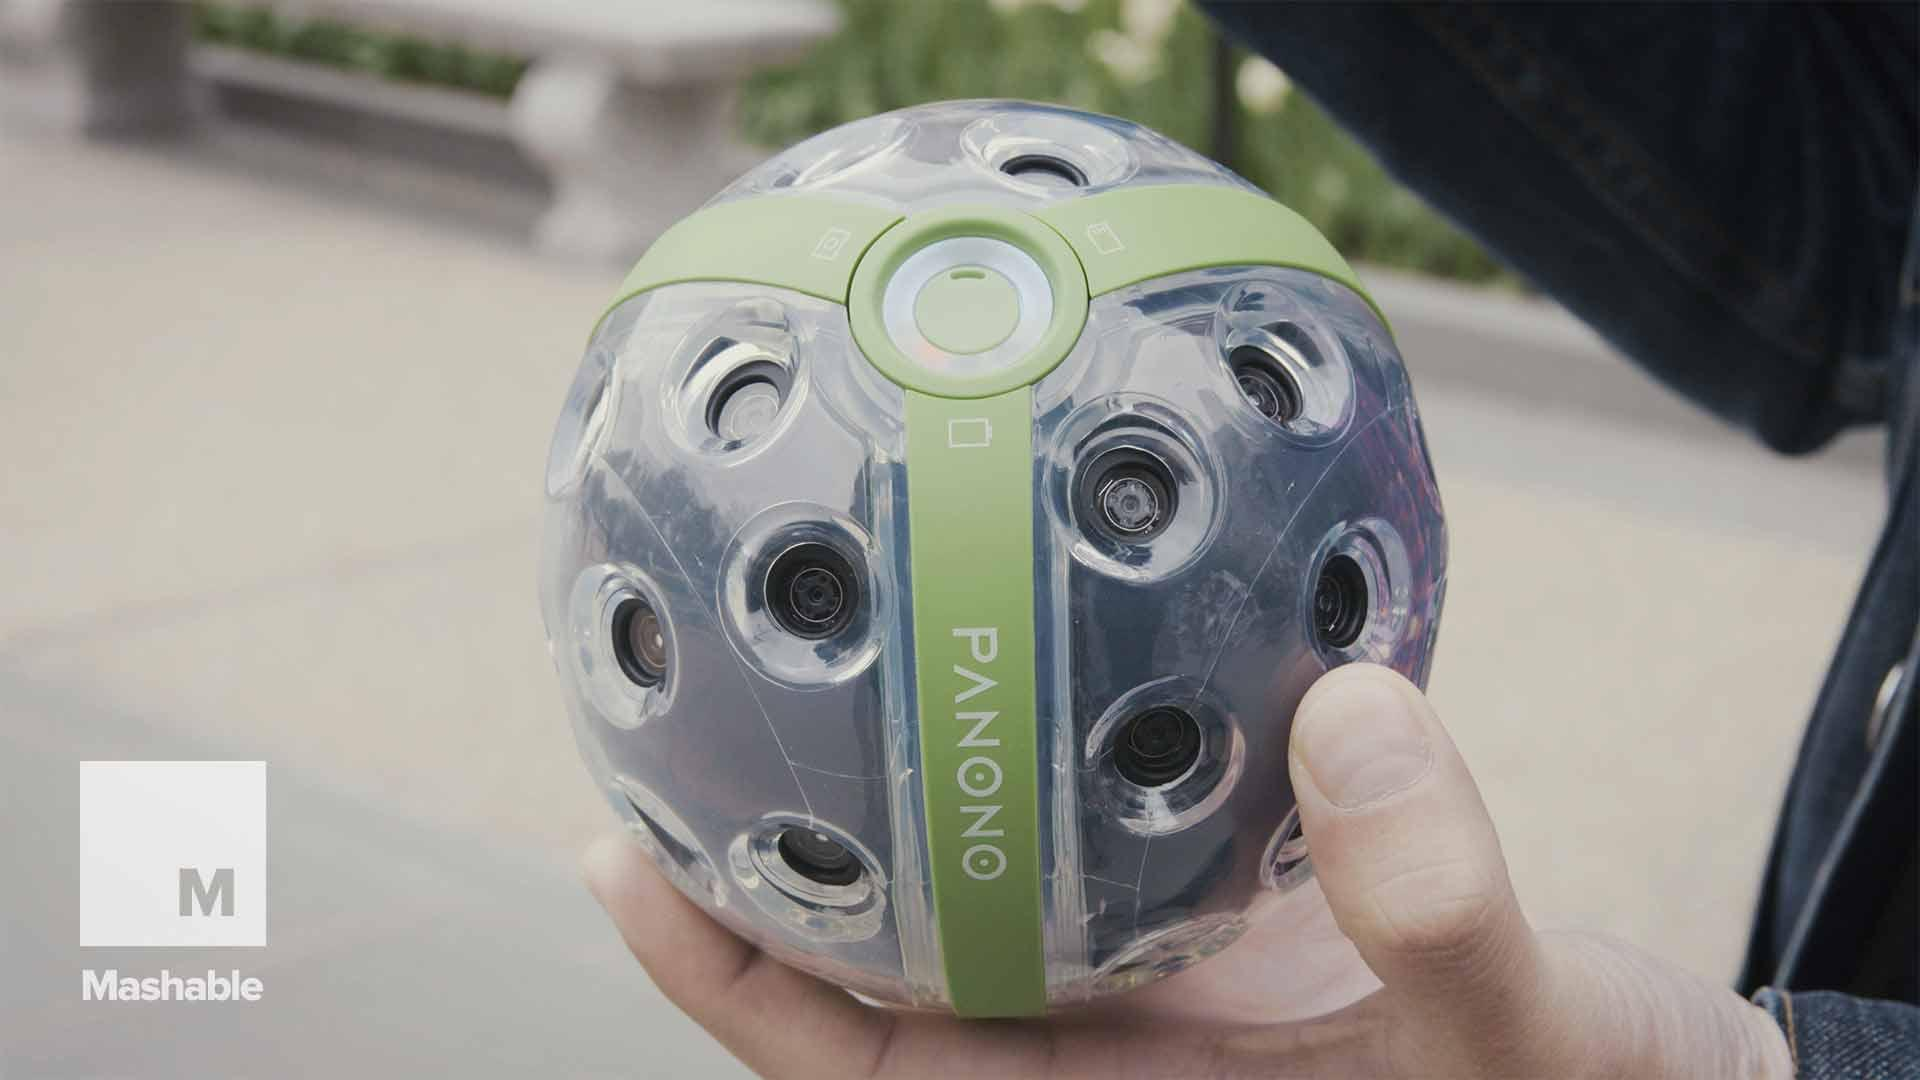 This 360 camera ball has its ups and downs